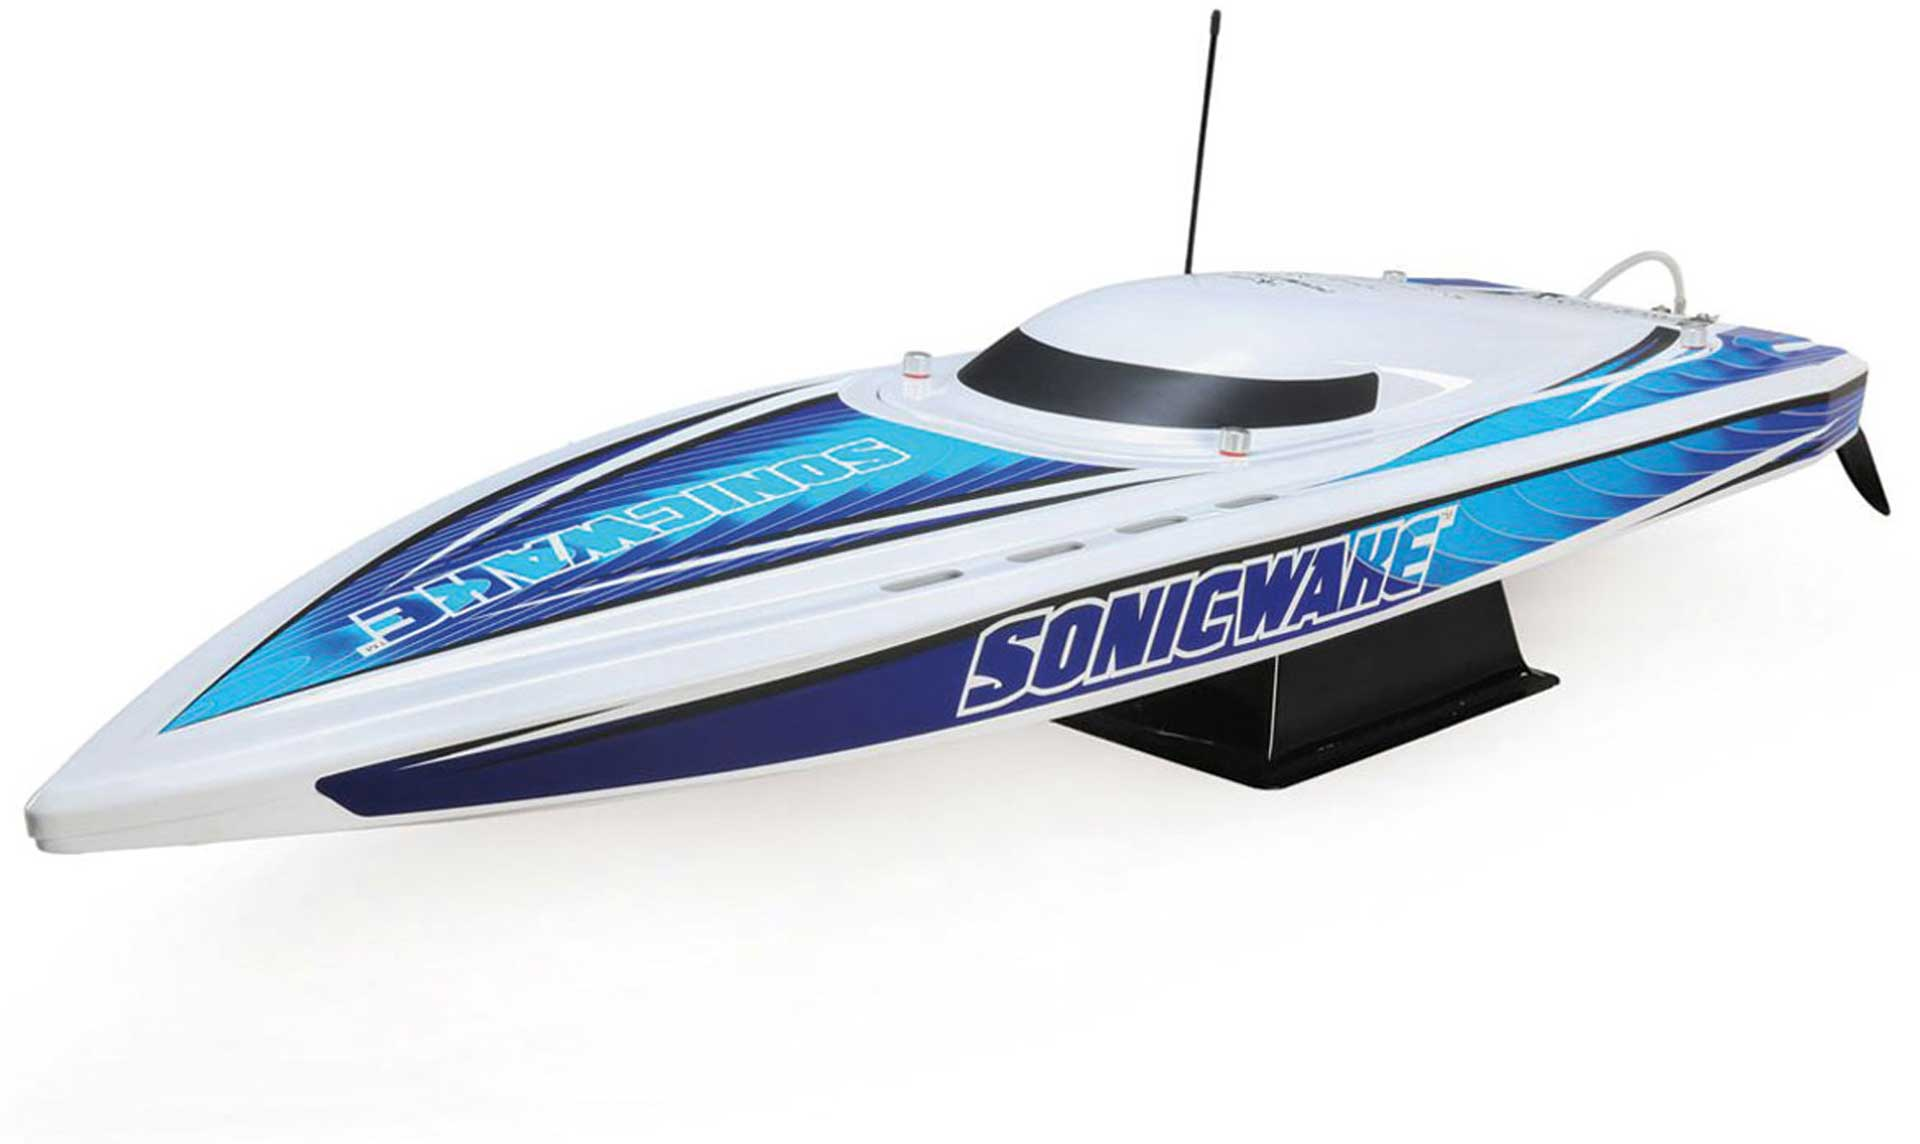 "PROBOAT SONICWAKE 36"" BRUSHLESS DEEP-V RTR WEIß"